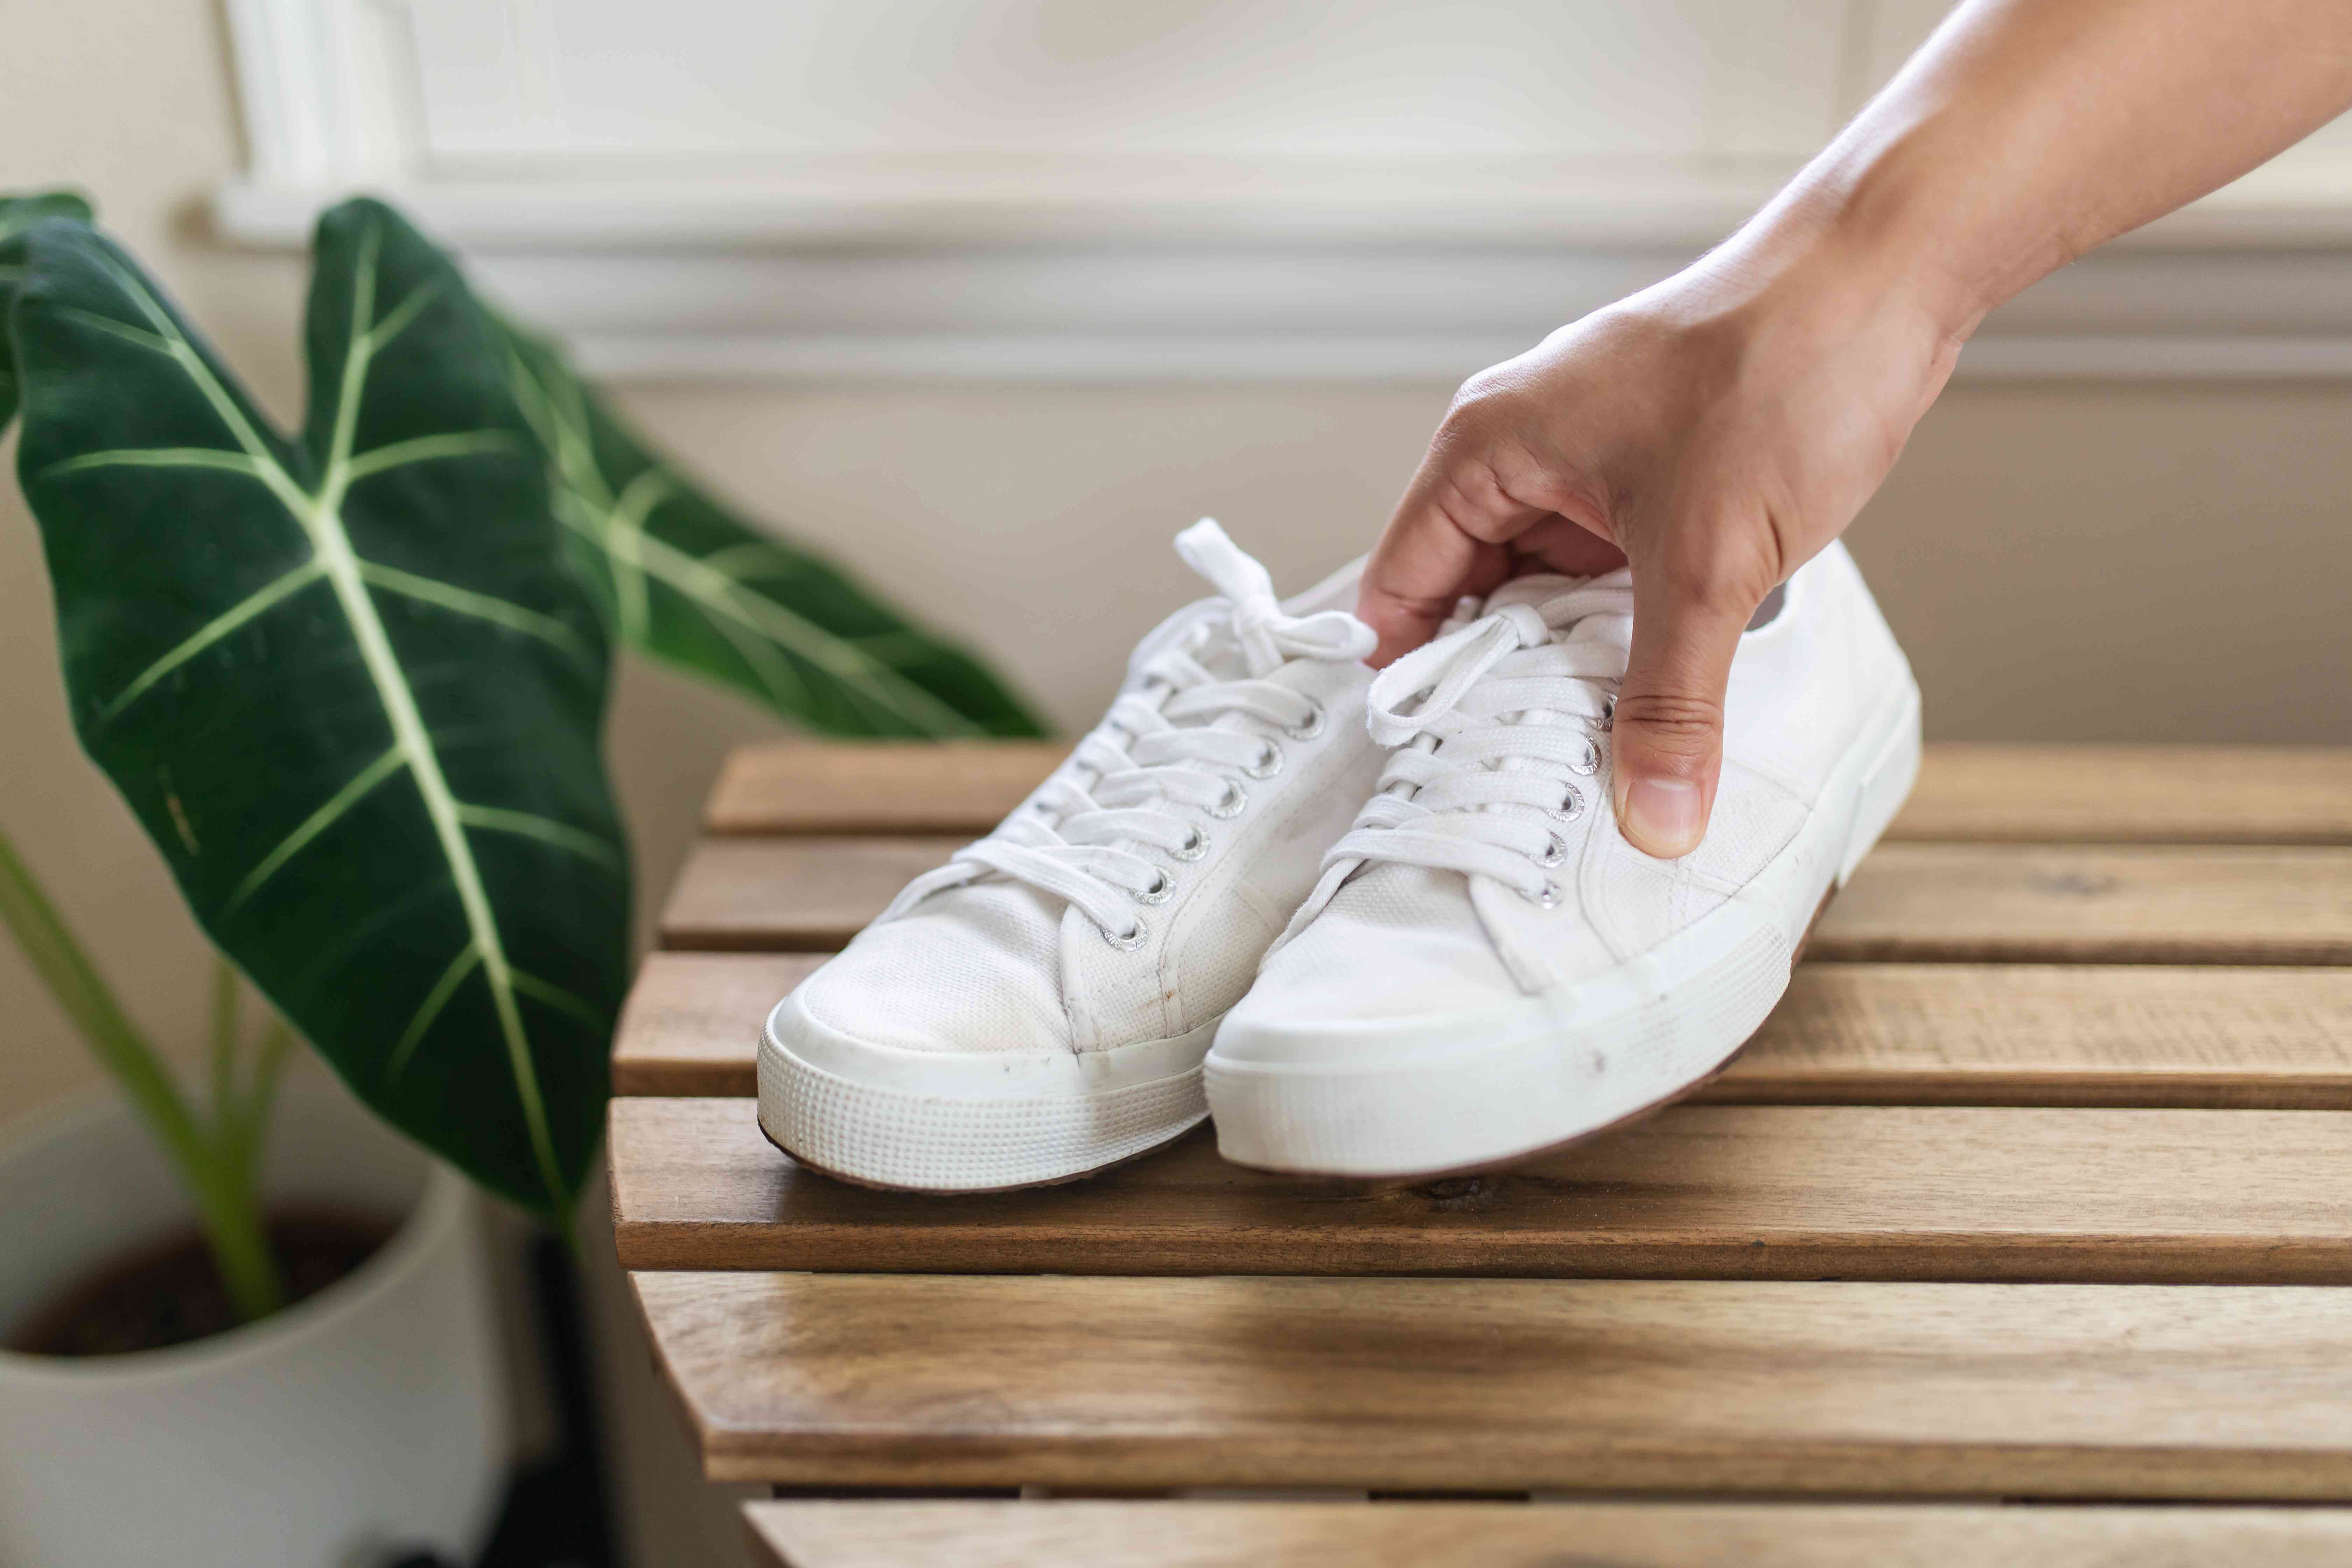 let baking soda sit in shoes for 24 hours